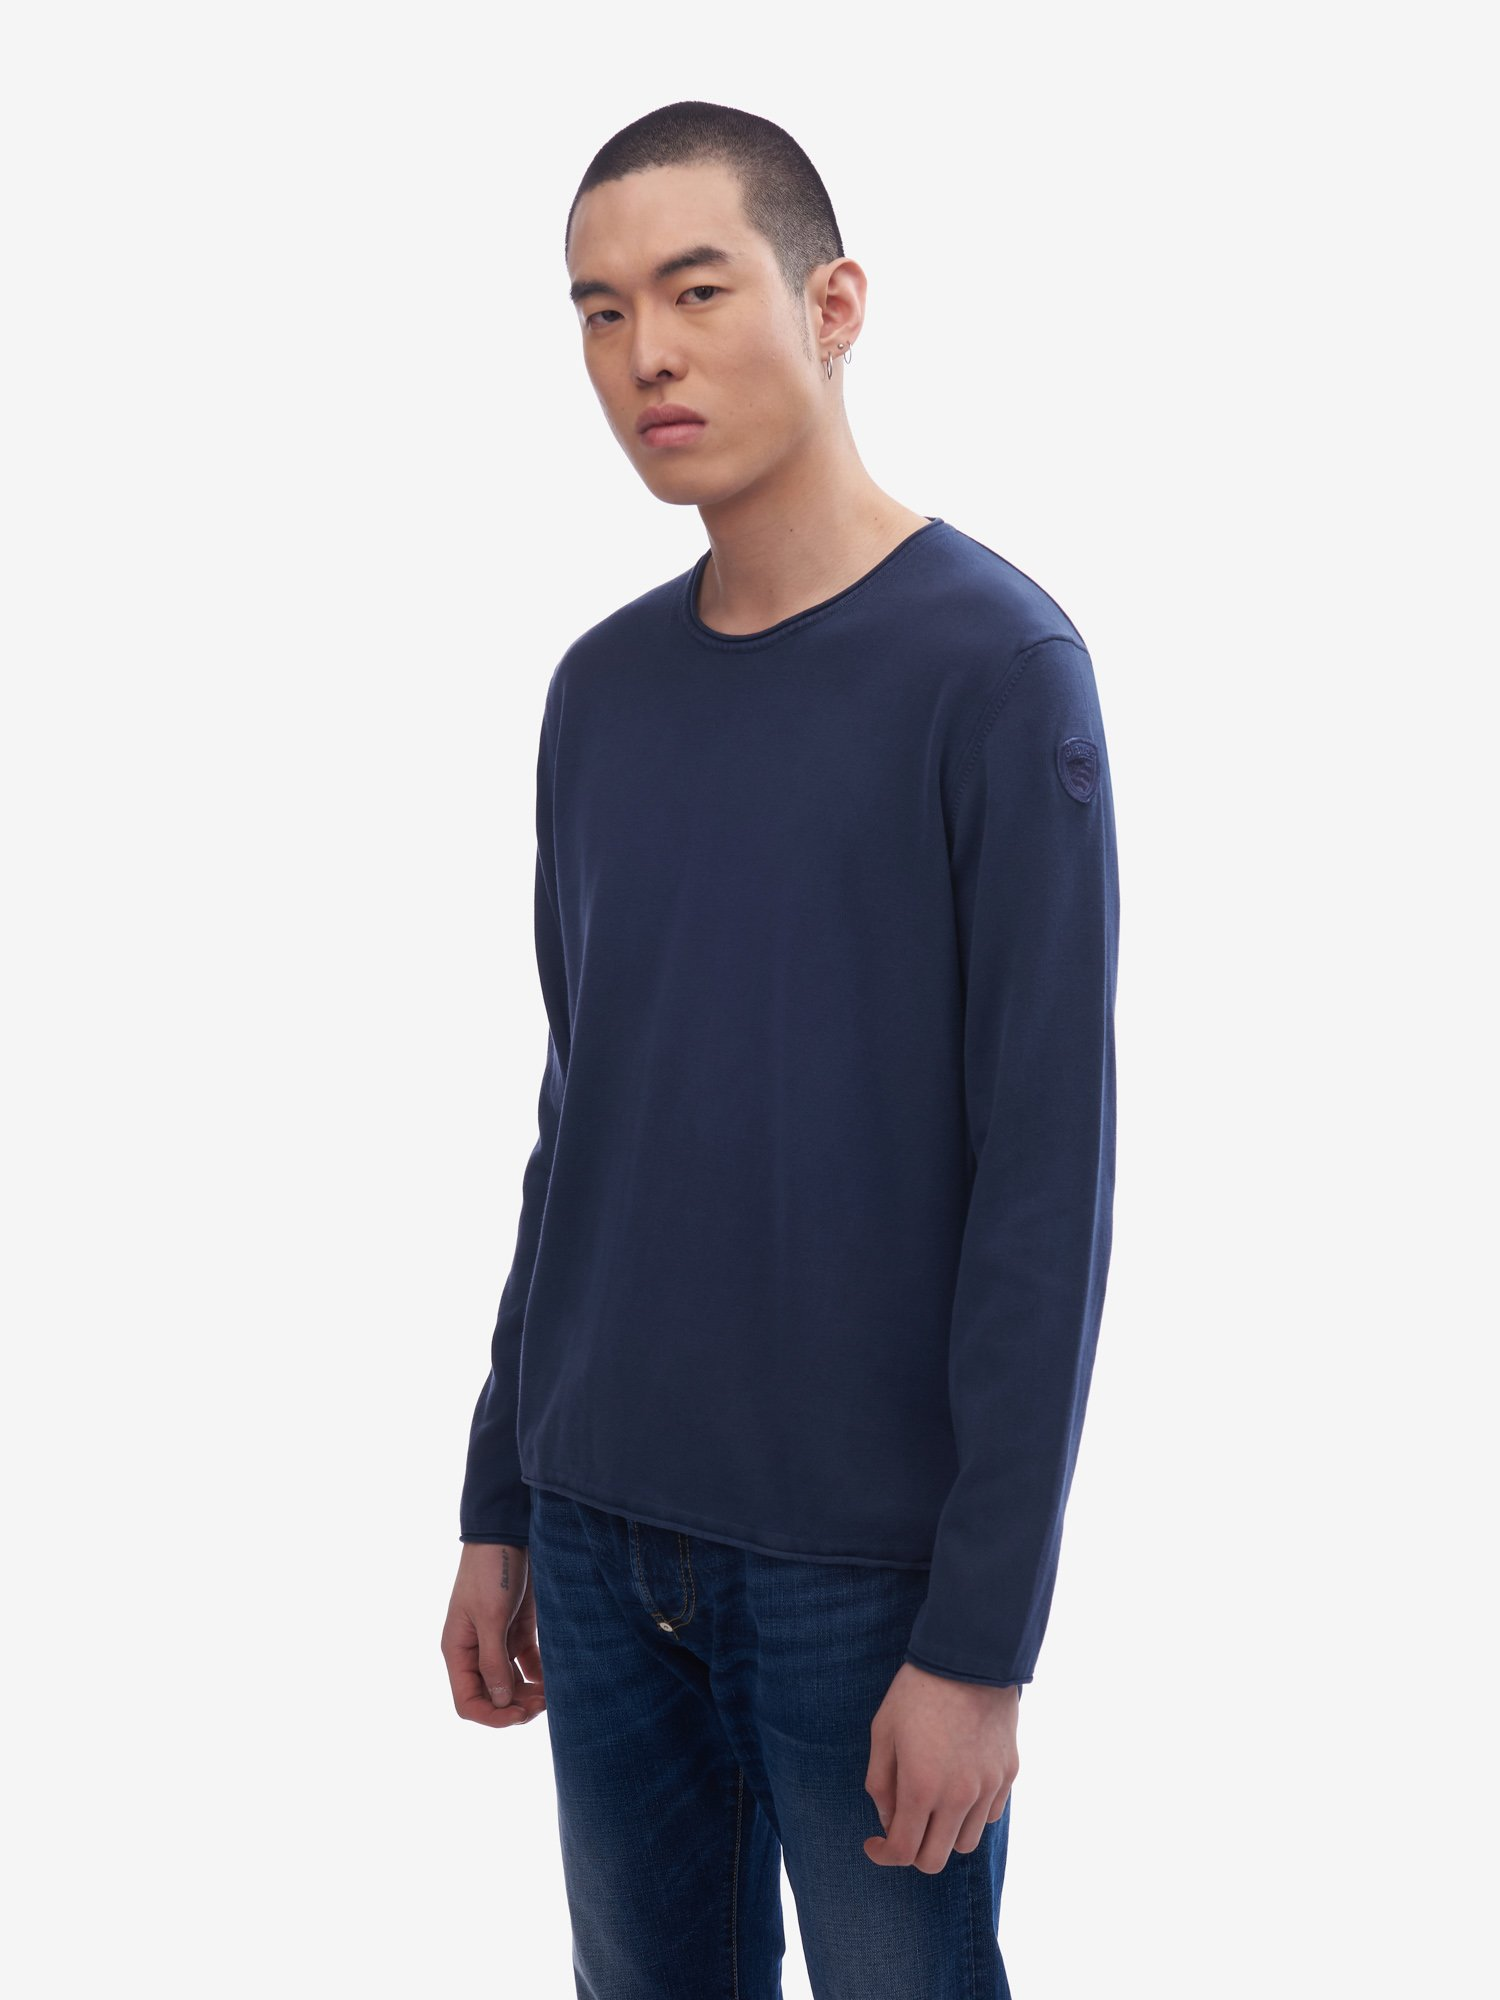 GARMENT-DYED SWEATER - Blauer